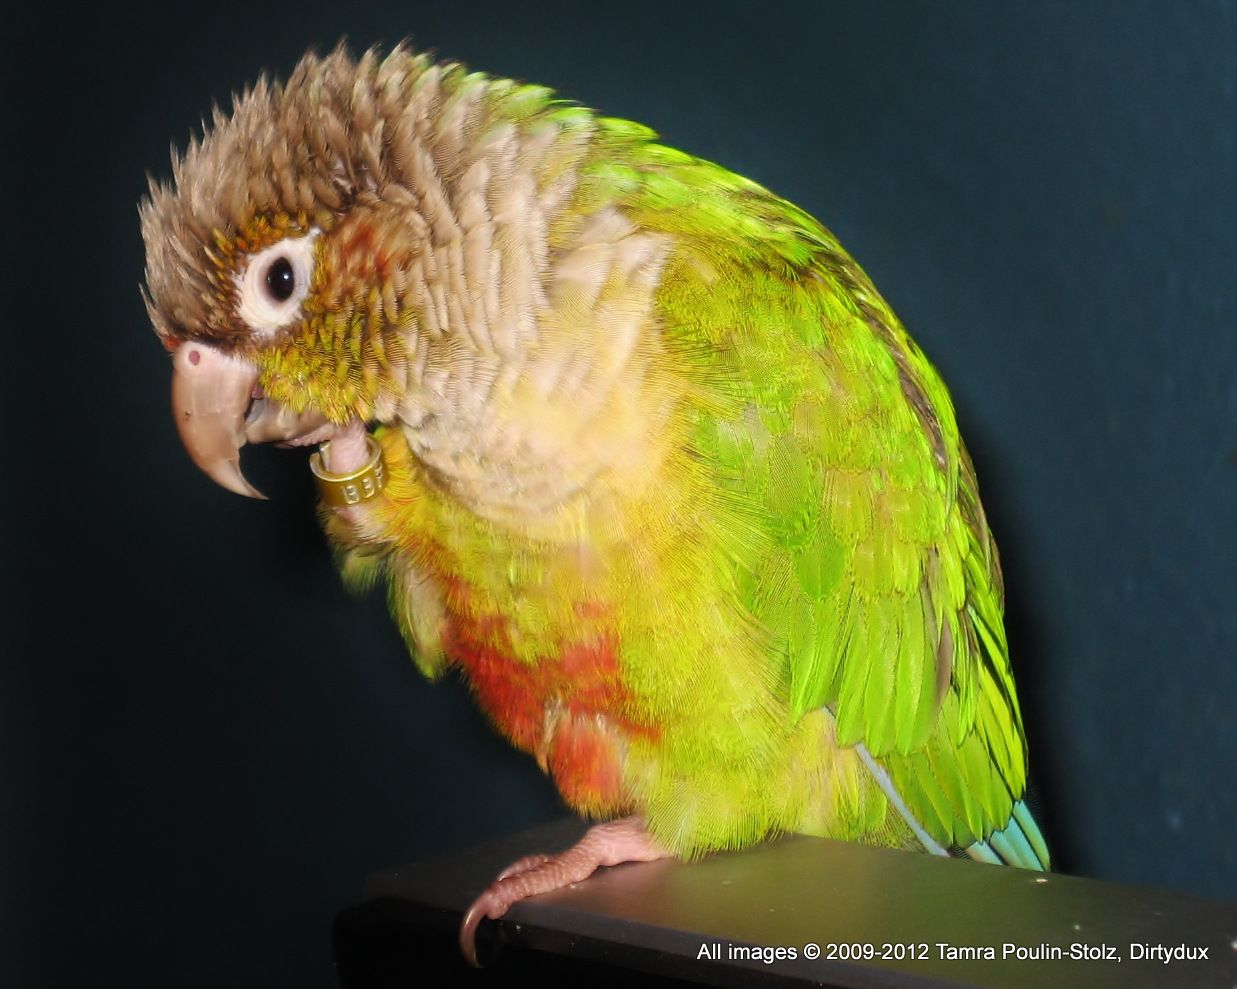 My Pineapple Green cheek conure or fancy Green cheek